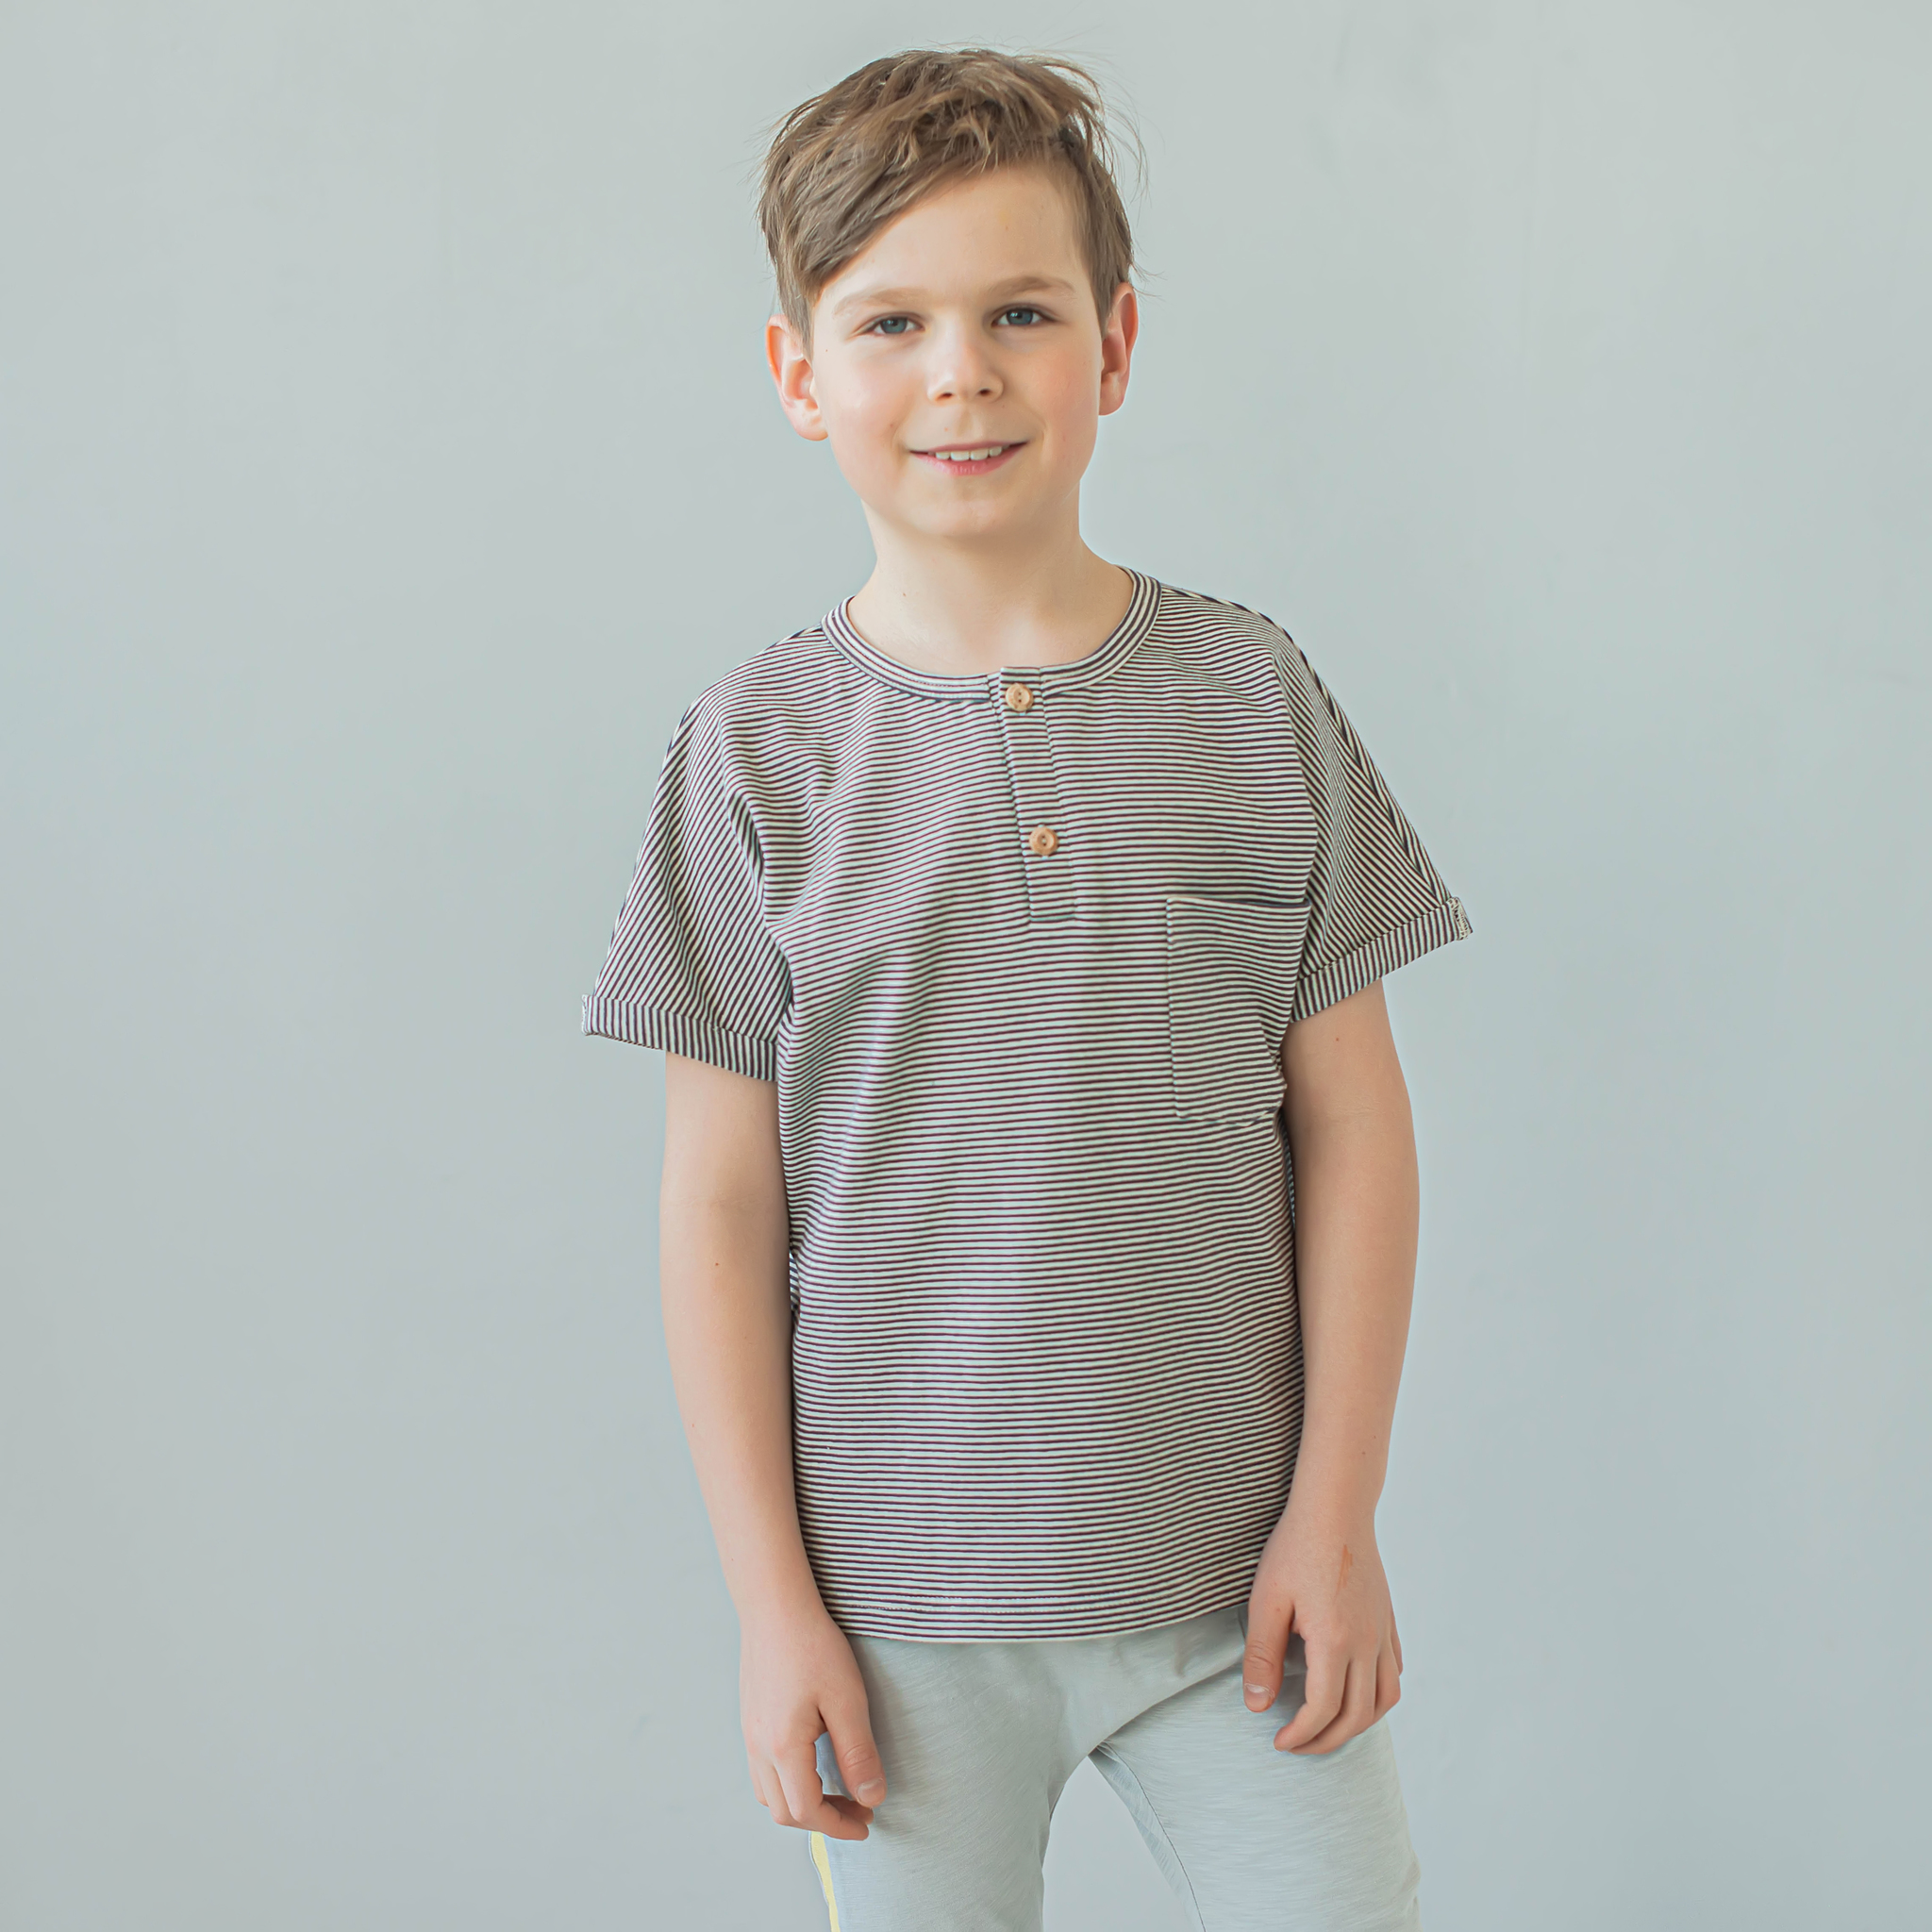 Polo T-shirt for teens - Striped